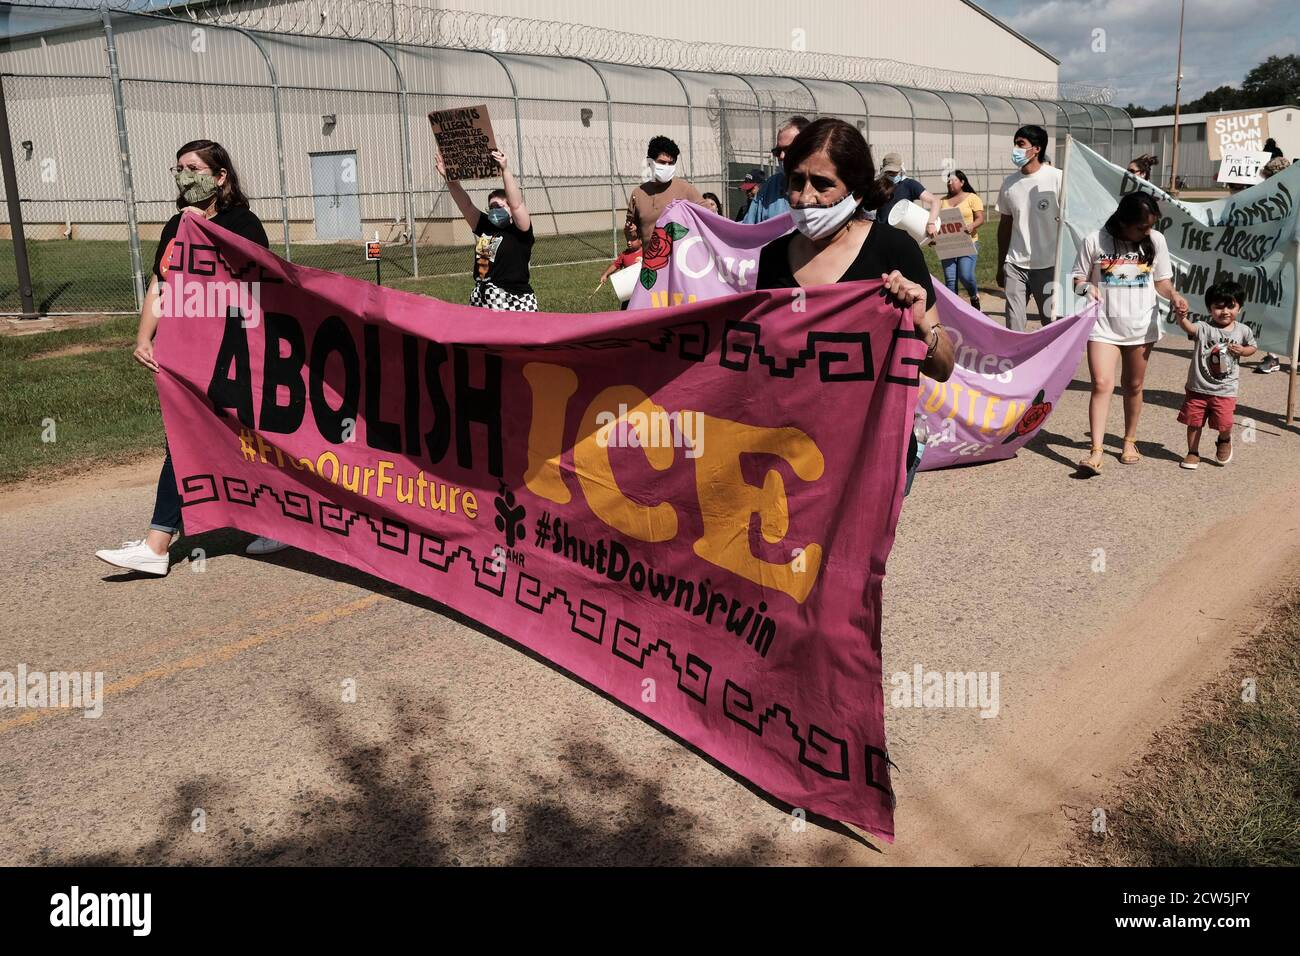 Ocilia, Georgia, USA. 26th Sep, 2020. Demonstrators gather outside of Irwin County Detention Center. Four Georgia immigration support agencies filed a complaint against Irwin County Detention Center (ICDC). Around 100 protesters met in Forsyth Park on Saturday to protest the treatment of women at the ICE Irwin County Detention Center in Ocilla. A complaint was filed by a nurse at the center, officials performed questionable hysterectomies, refused to test detainees for COVID-19 and shredded medical records. The complaint to the Homeland Security Department's internal watchdog relies on acc Stock Photo